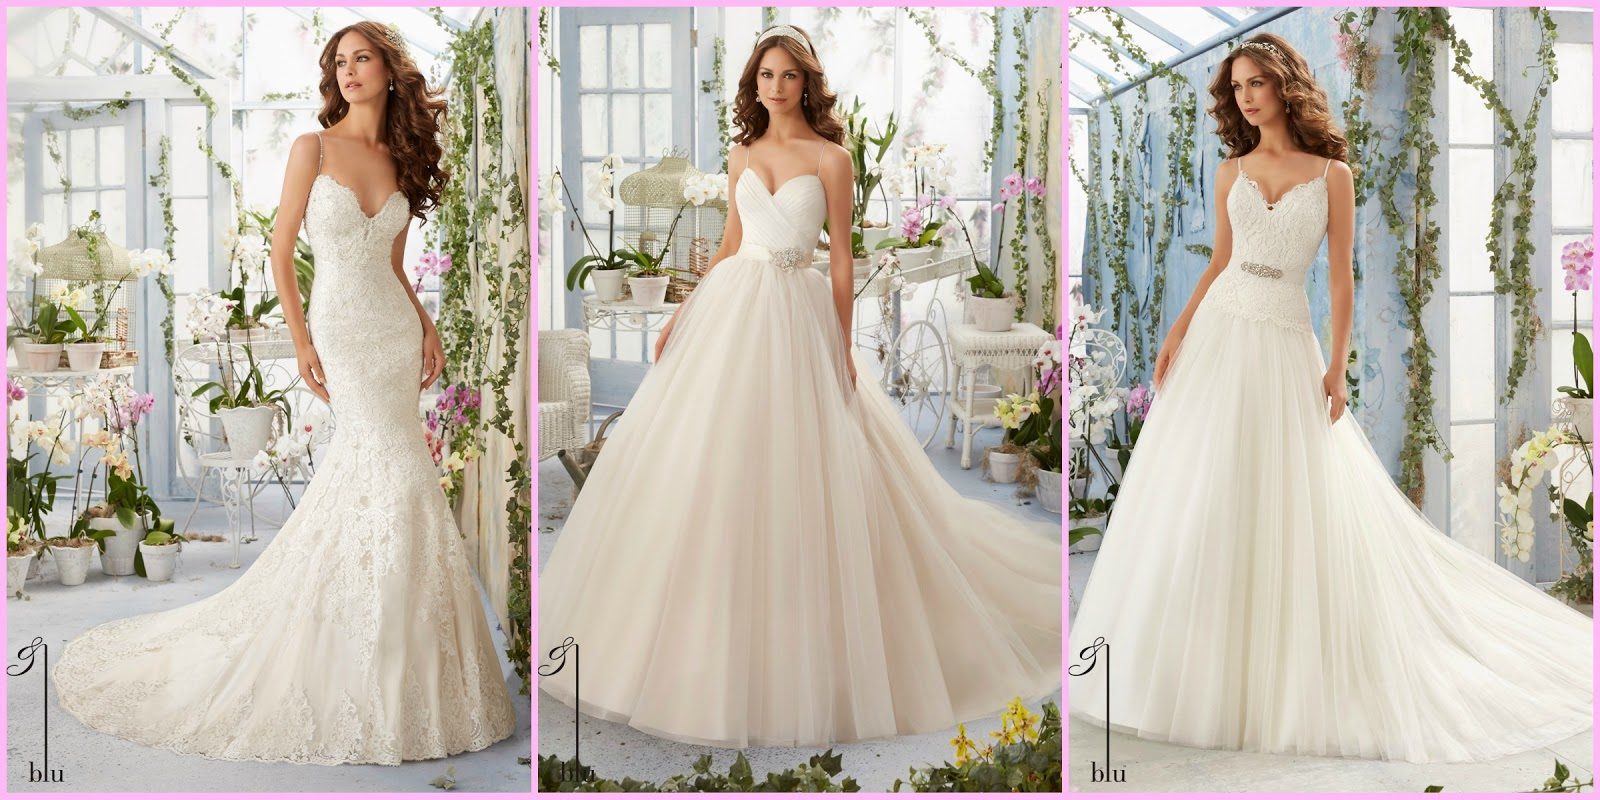 Wedding dresses usa based stores - Fashion wedding dress